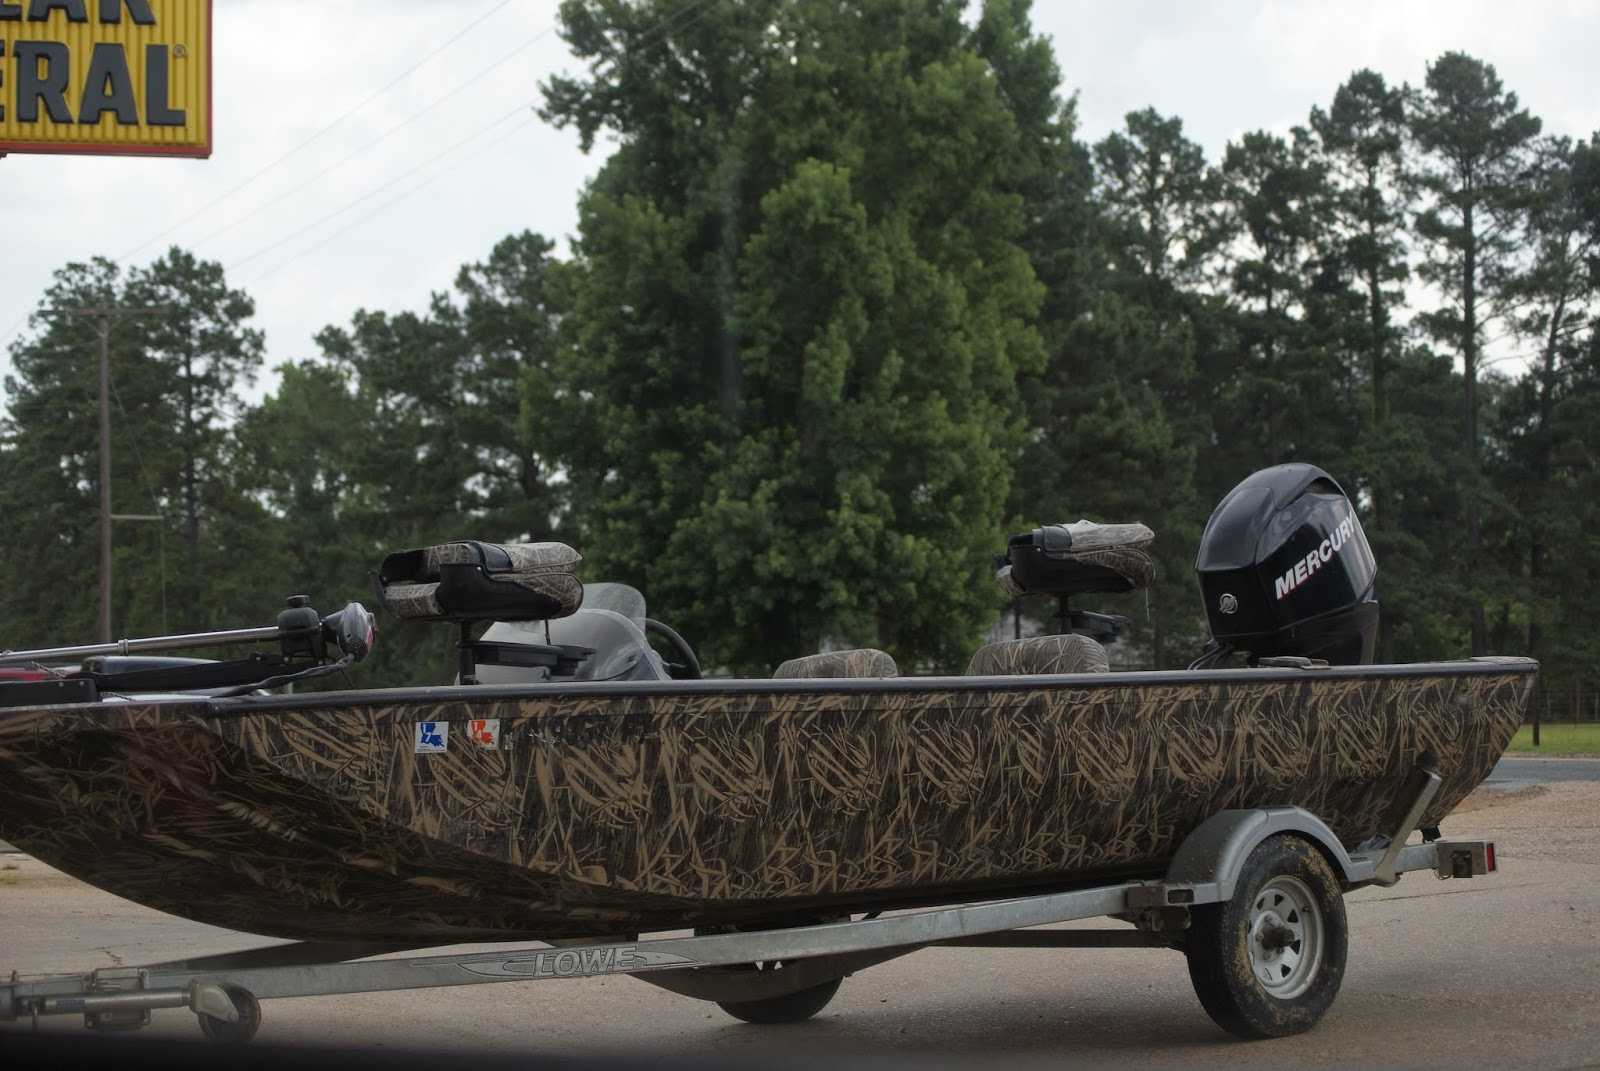 Camouflage boat and trailer